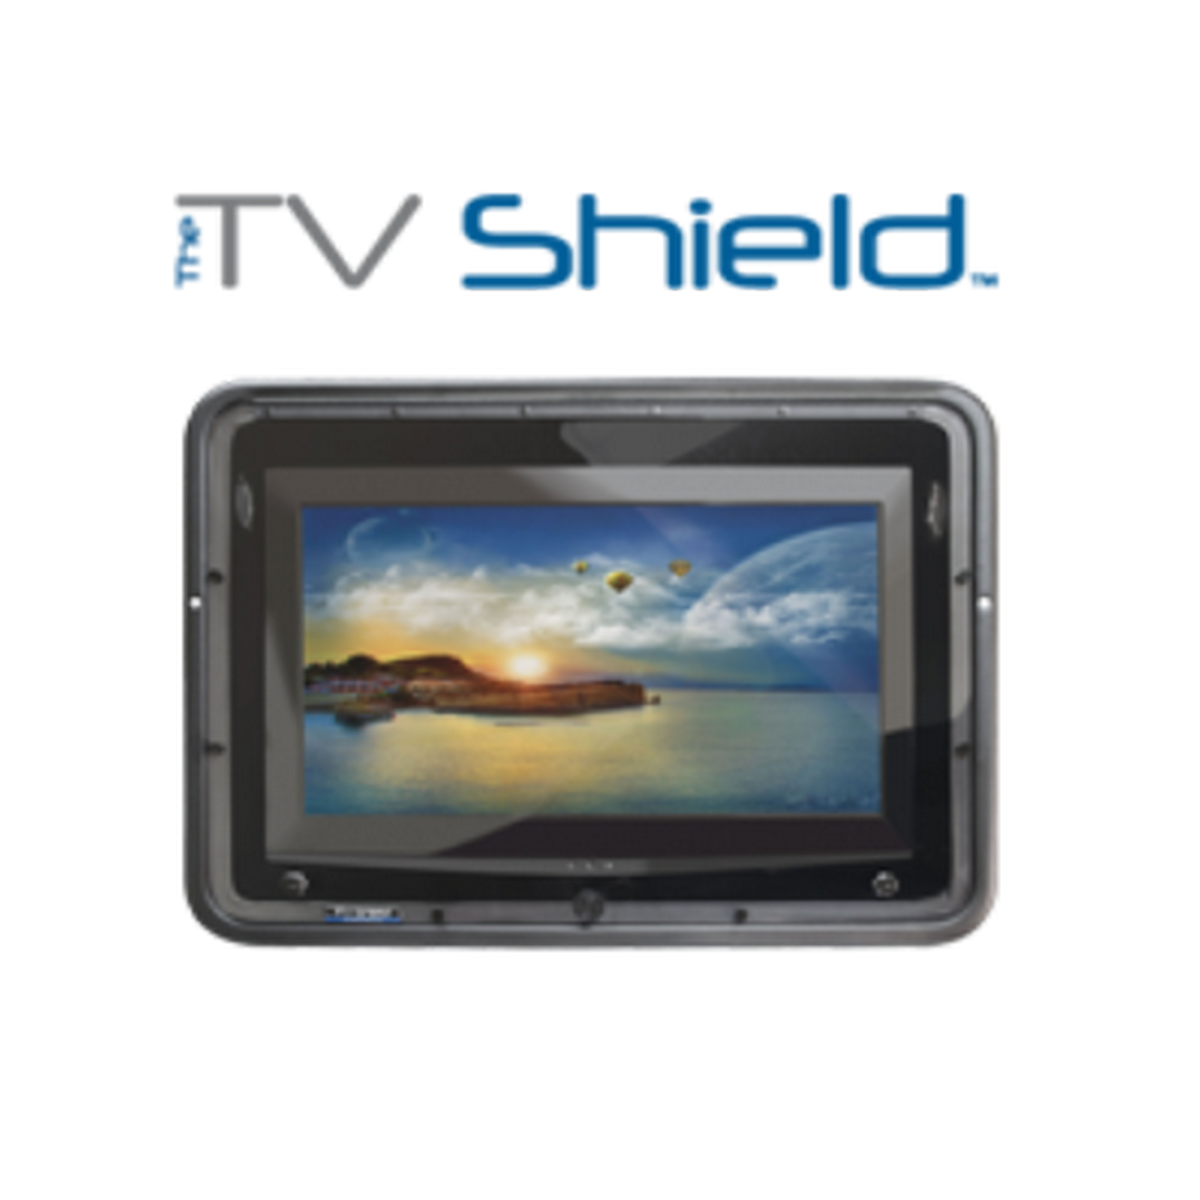 TV Shield TVS1100 